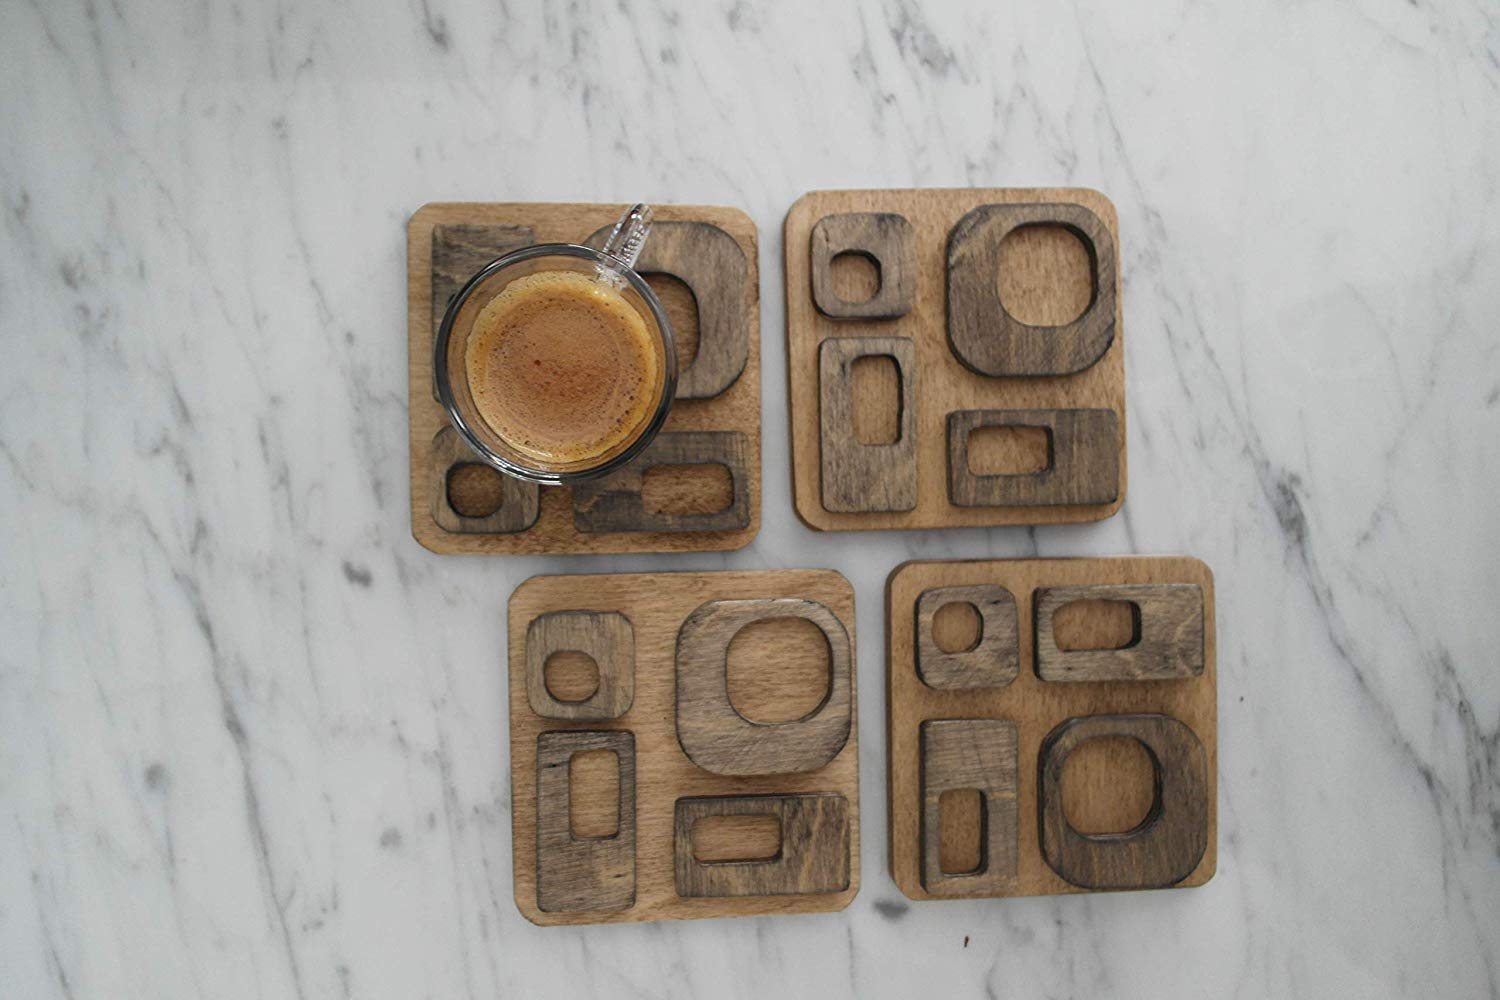 Oak - Walnut, Set of 4 Hand painted wooden coasters, Drink Coasters, Hexagon coasters, contemporary, Beautiful and unique gifts